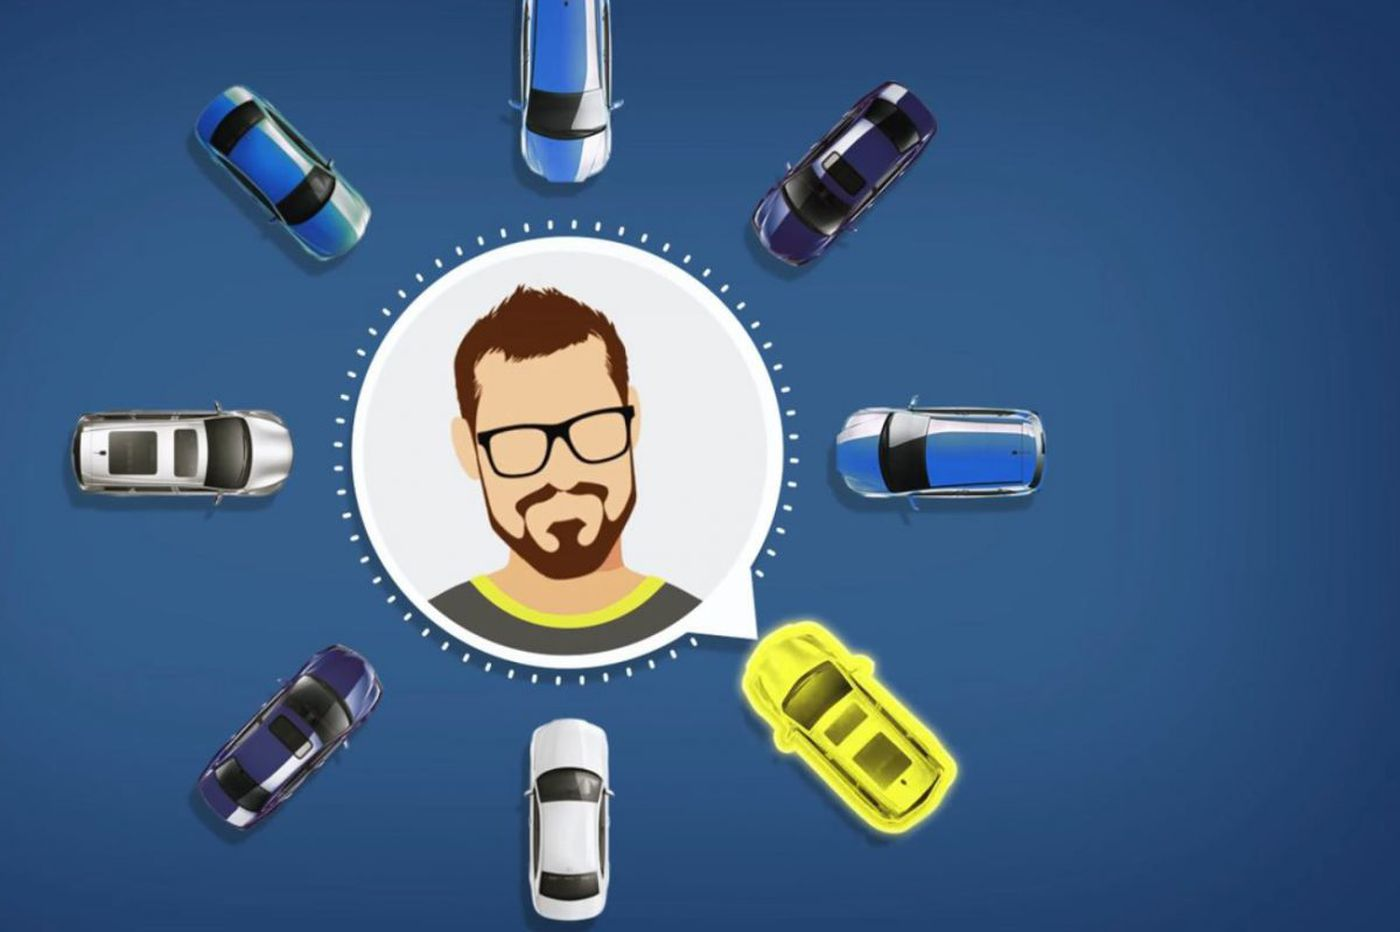 Flexdrive brings on-demand weekly car sharing to Philly, South Jersey